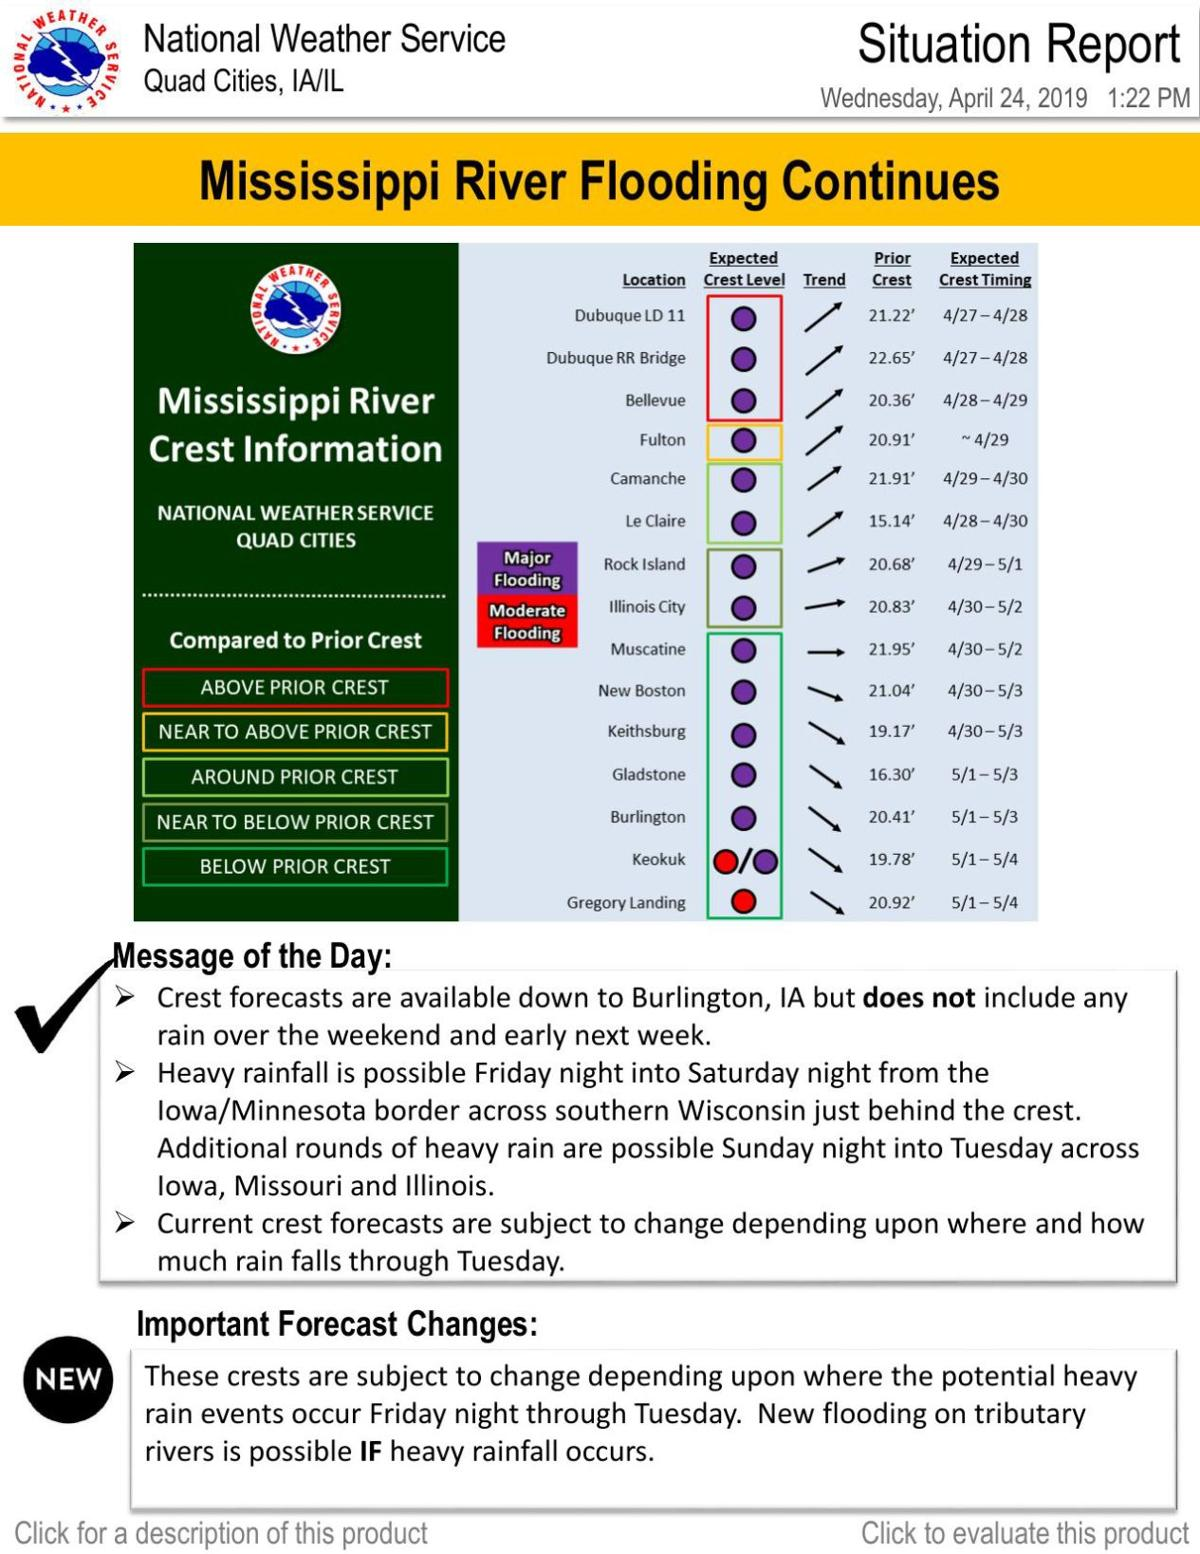 Mississippi River flooding situation report